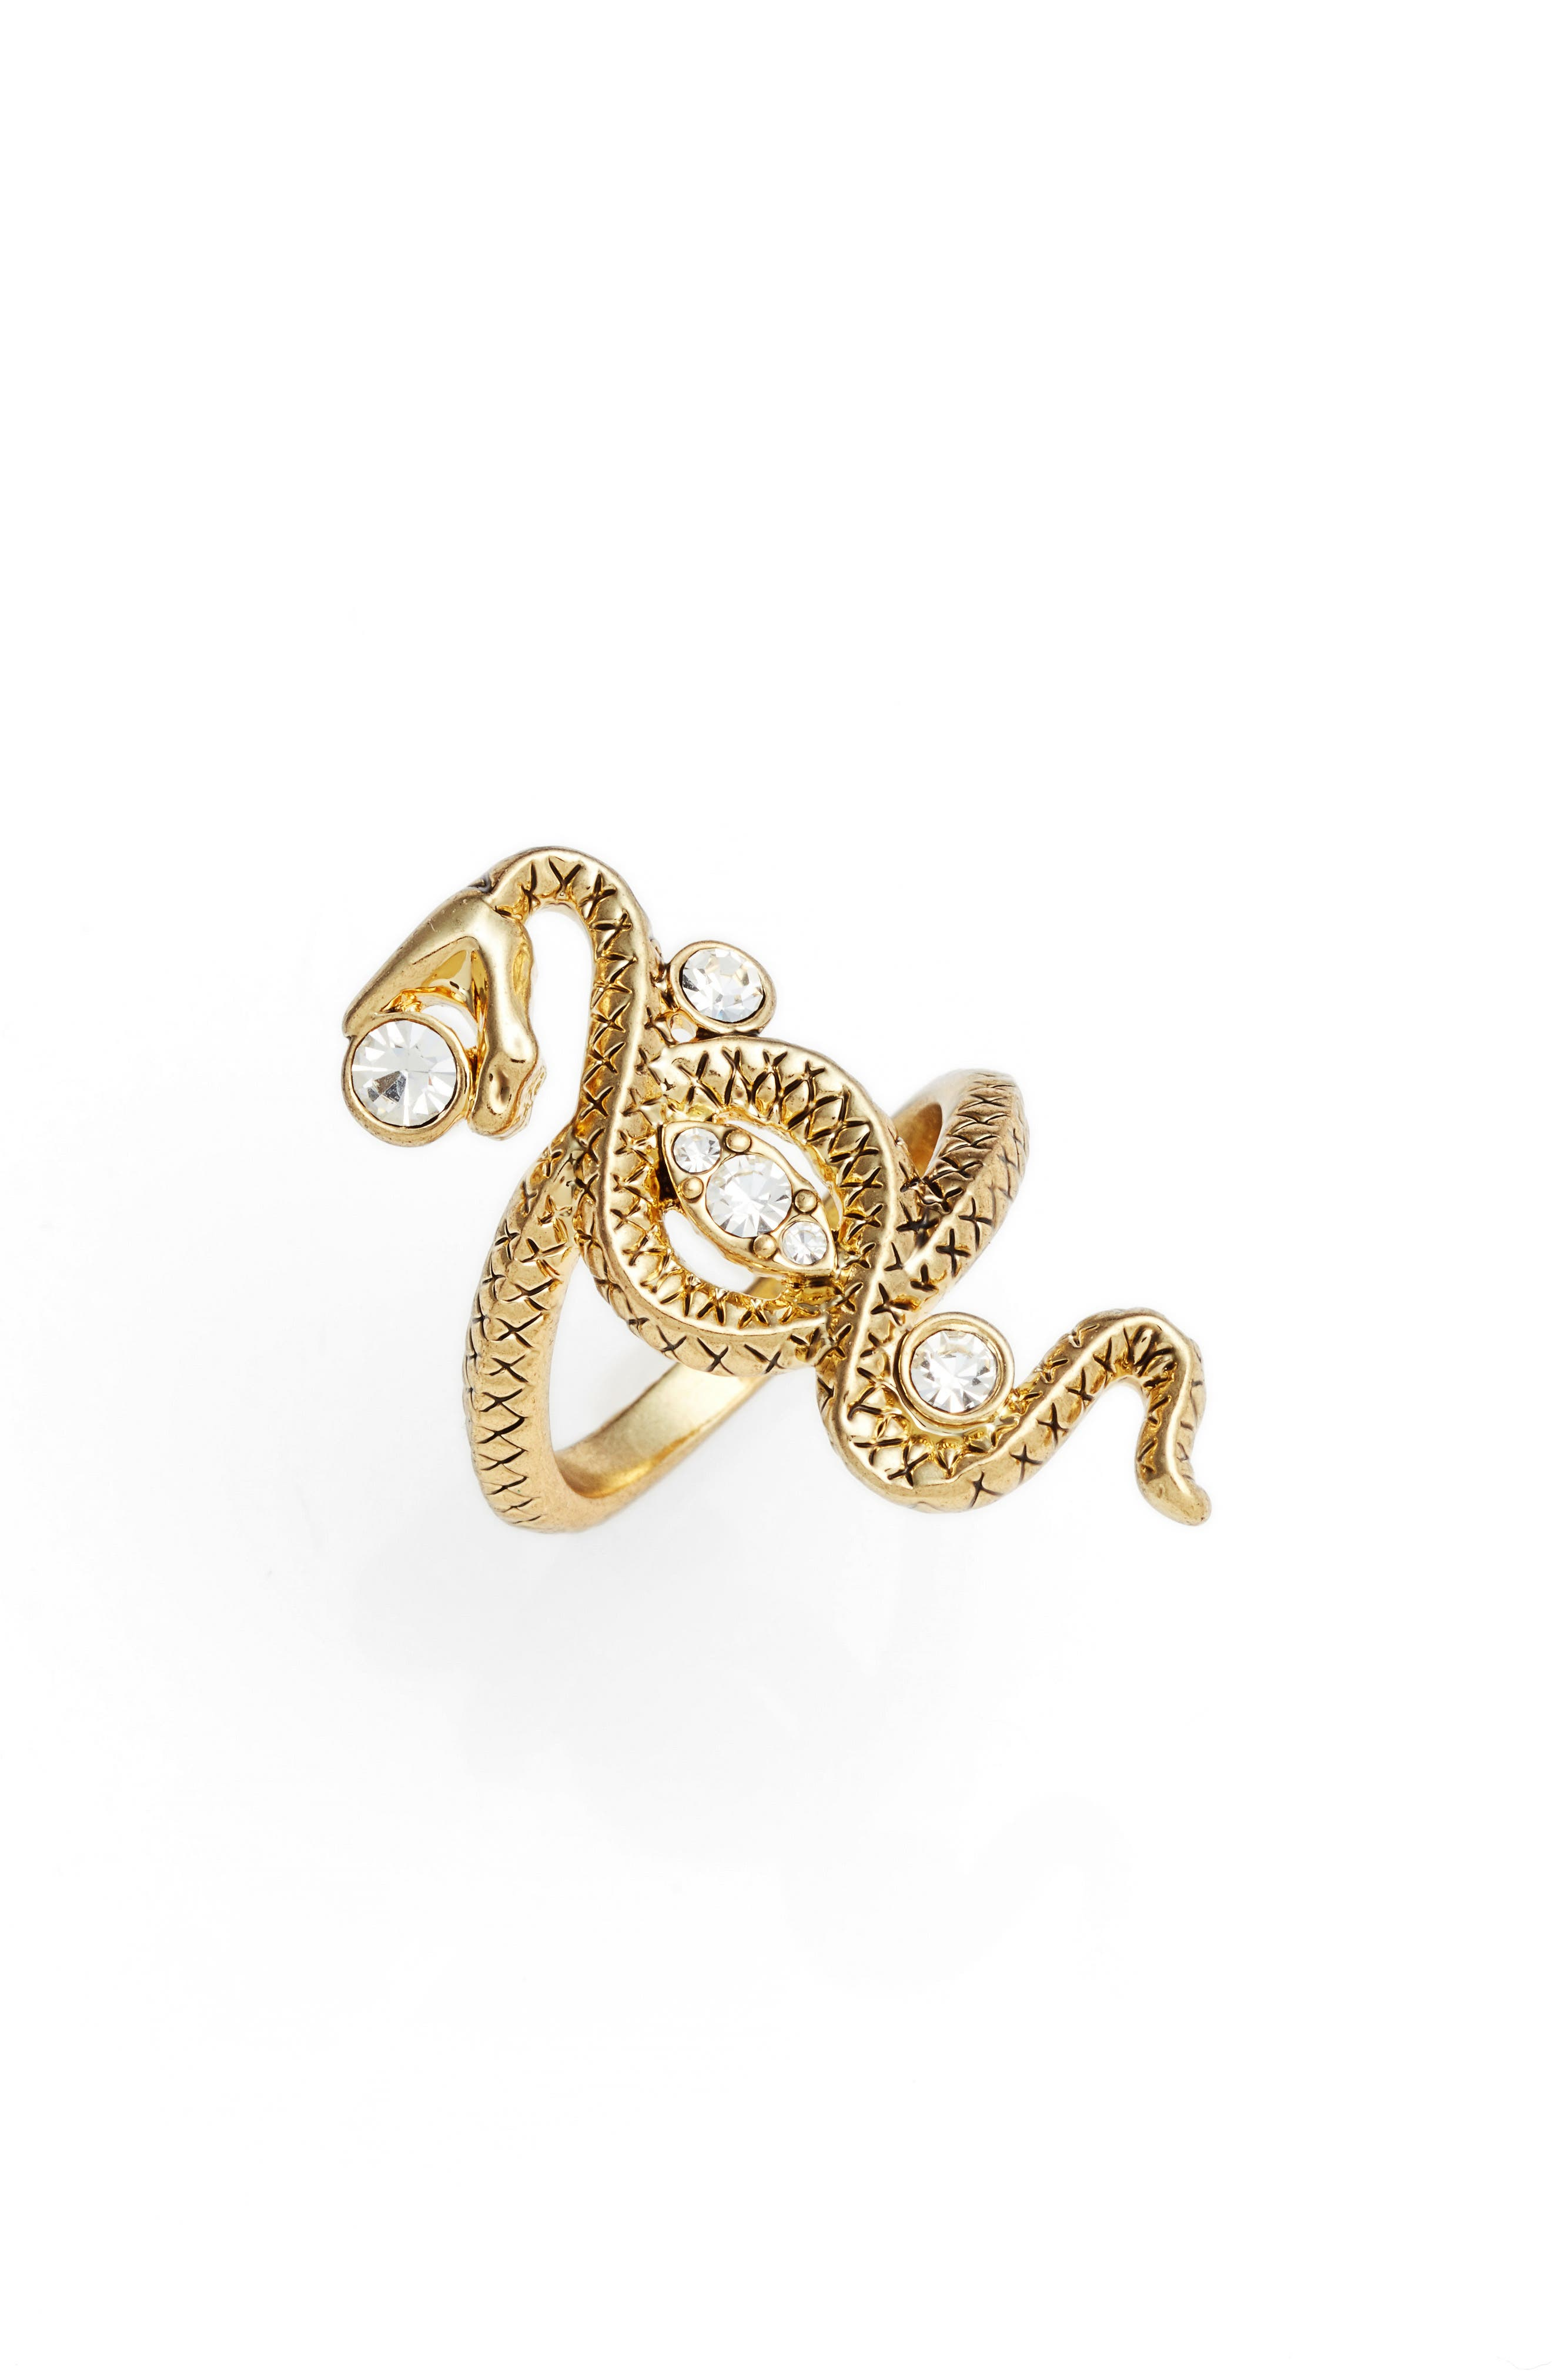 Main Image - Luv AJ Twisted Serpent Ring